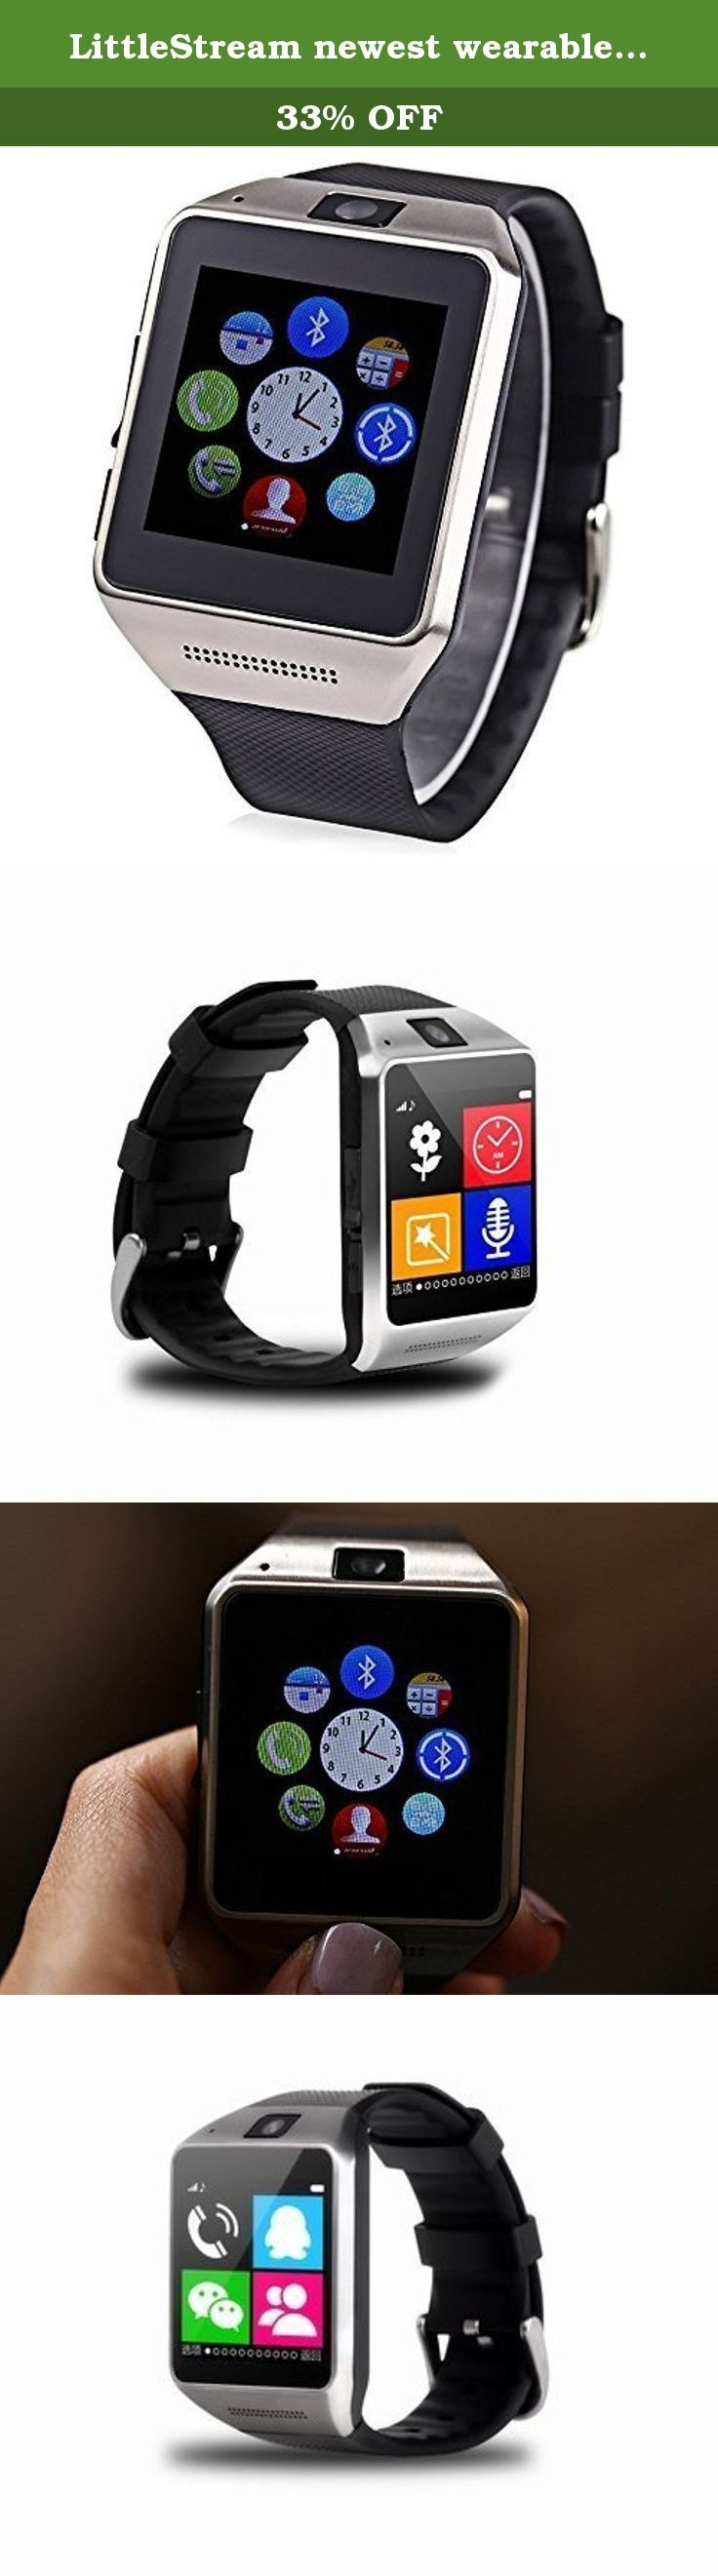 LittleStream newest wearable smart watch intelligent Bluetooth Health GT08 wristwatch phone with SIM card slot and TF card for Android smartphone (not for IOS smartphone) black silver. Notice: Push application for IOS are not currently available on iOS MTK6260A 533MHz CPU System Architecture (low power) Networking and connectivity SIM card one SIM card (micro SIM. card) frequency band GSM 850/900/1800/1900 MHz Bluetooth Bluetooth 4.0 Storage RAM 128M ROM 64M external memory card TF card…